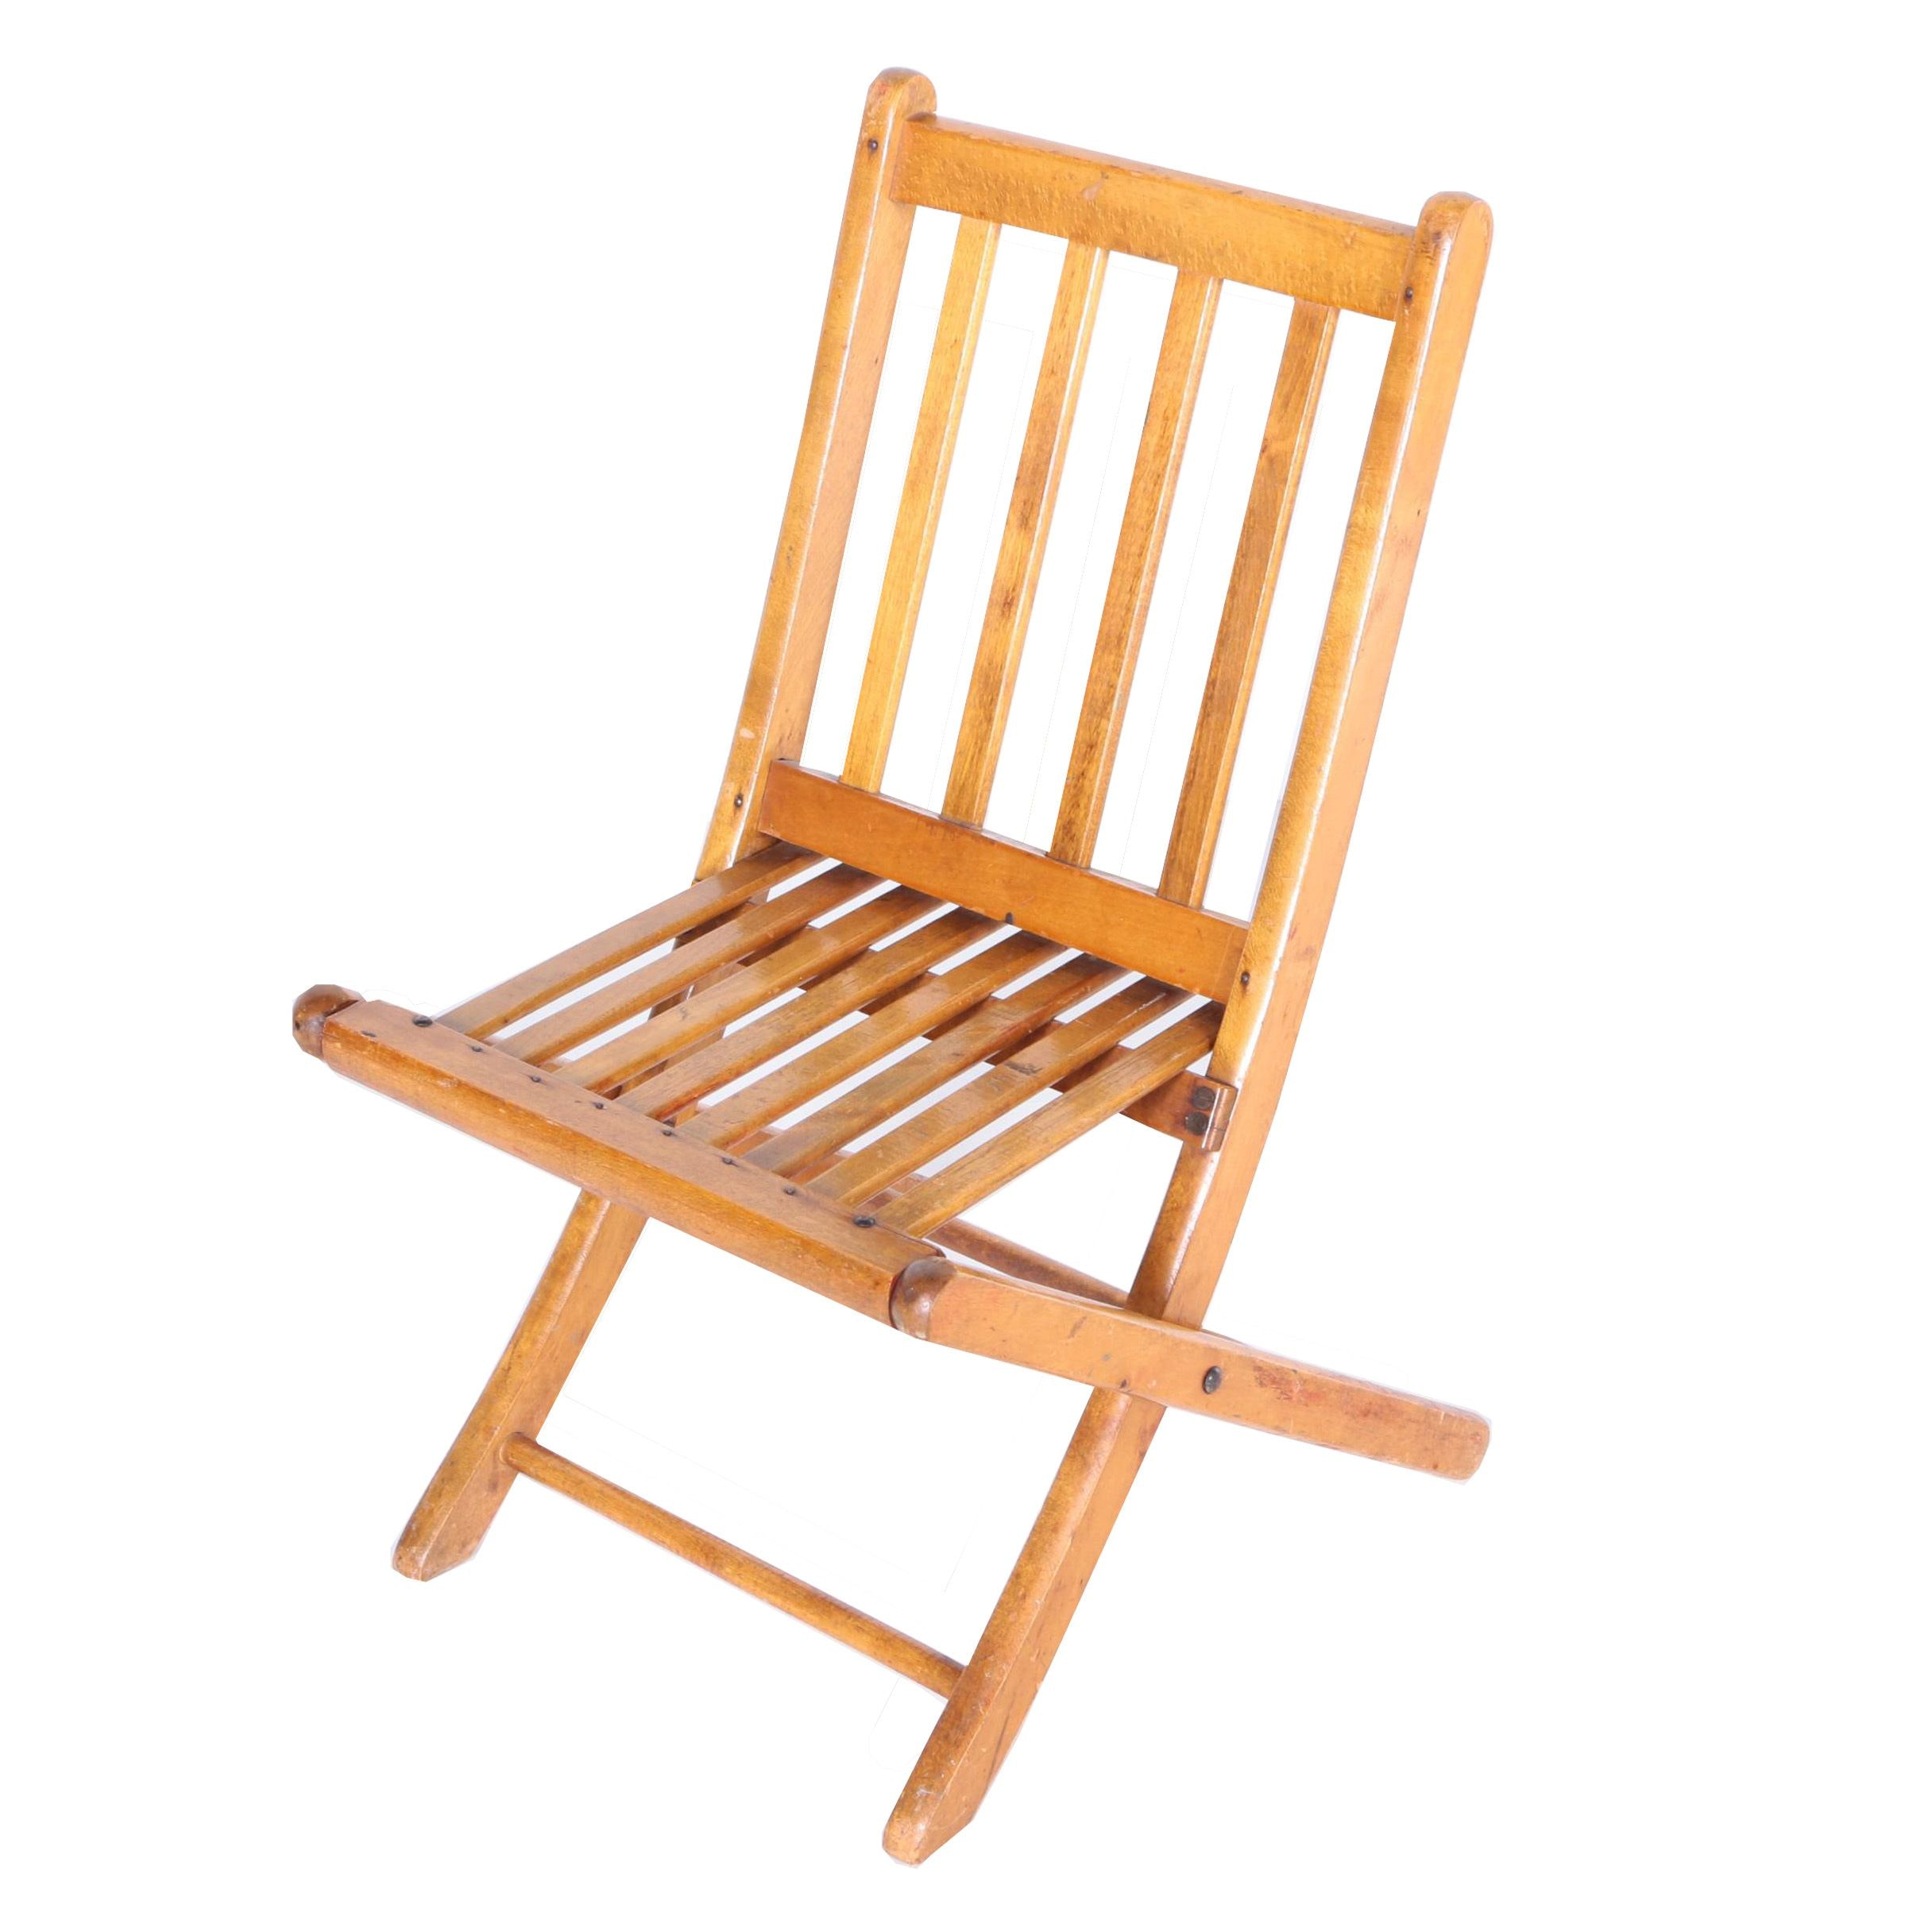 Folding Children's Chair from Paris Manufacturing Company